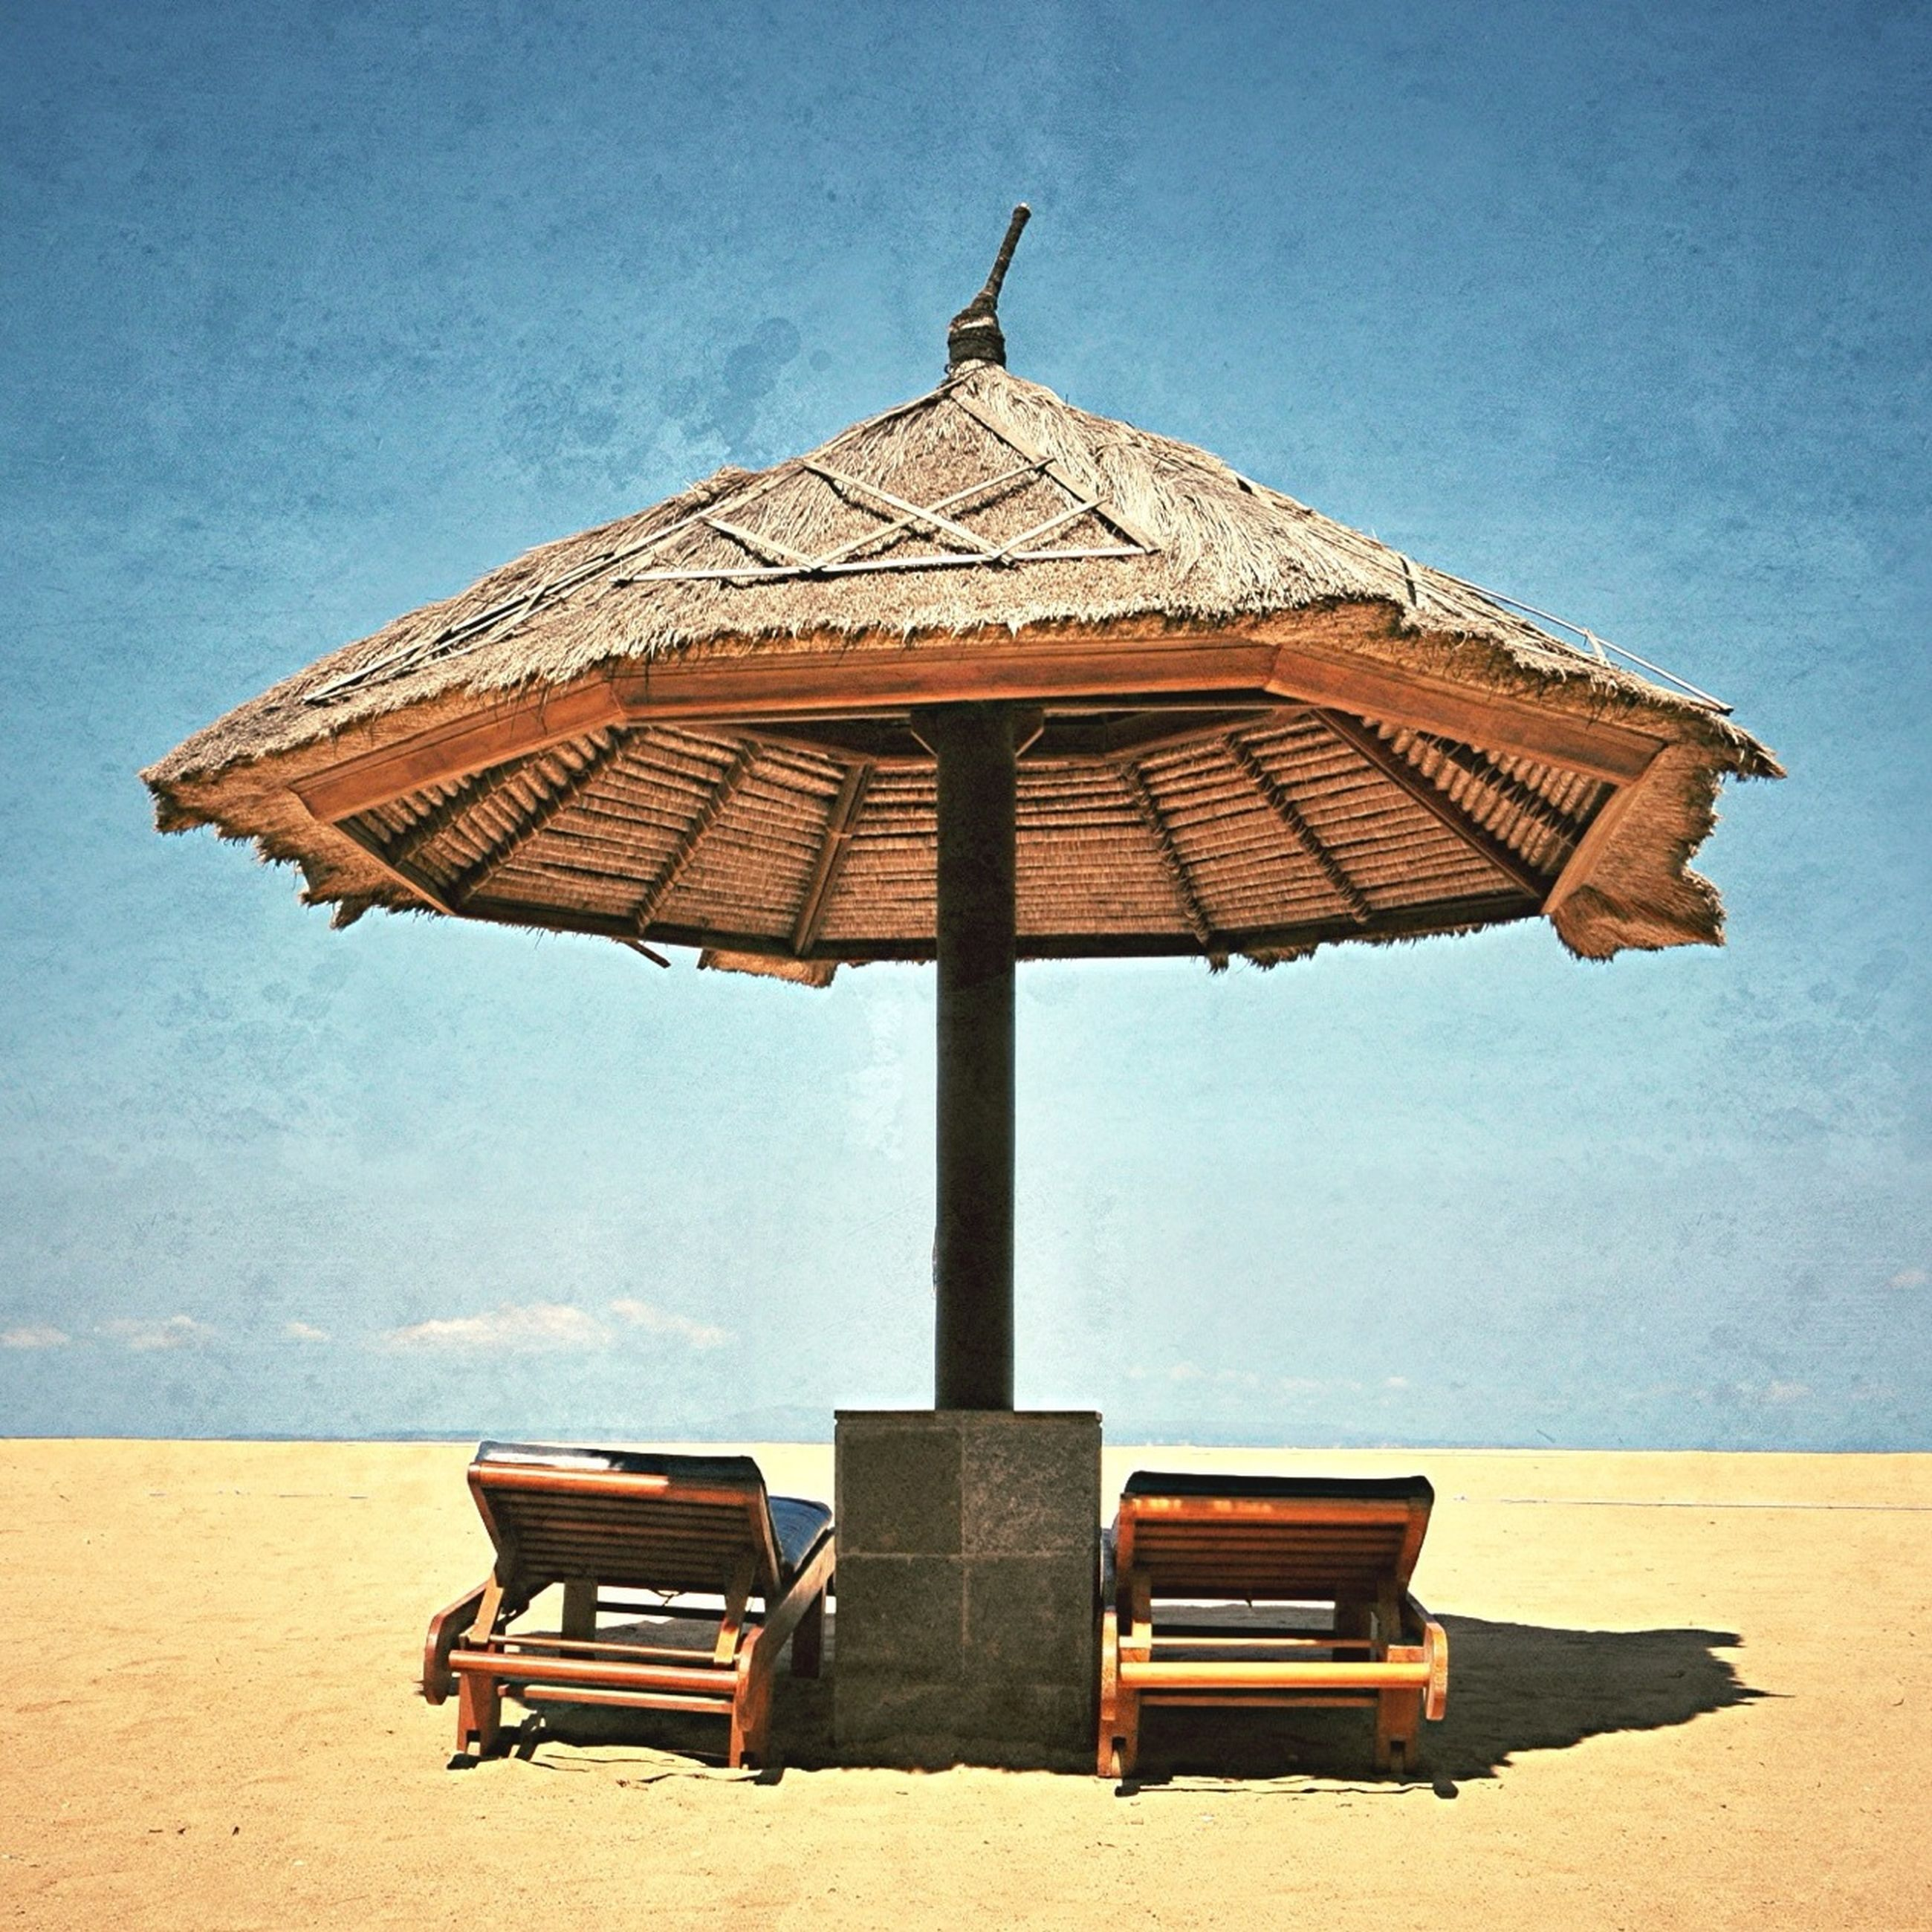 beach, chair, sand, sea, absence, bench, empty, relaxation, beach umbrella, parasol, sunshade, lounge chair, thatched roof, sky, tranquility, water, vacations, seat, gazebo, shore